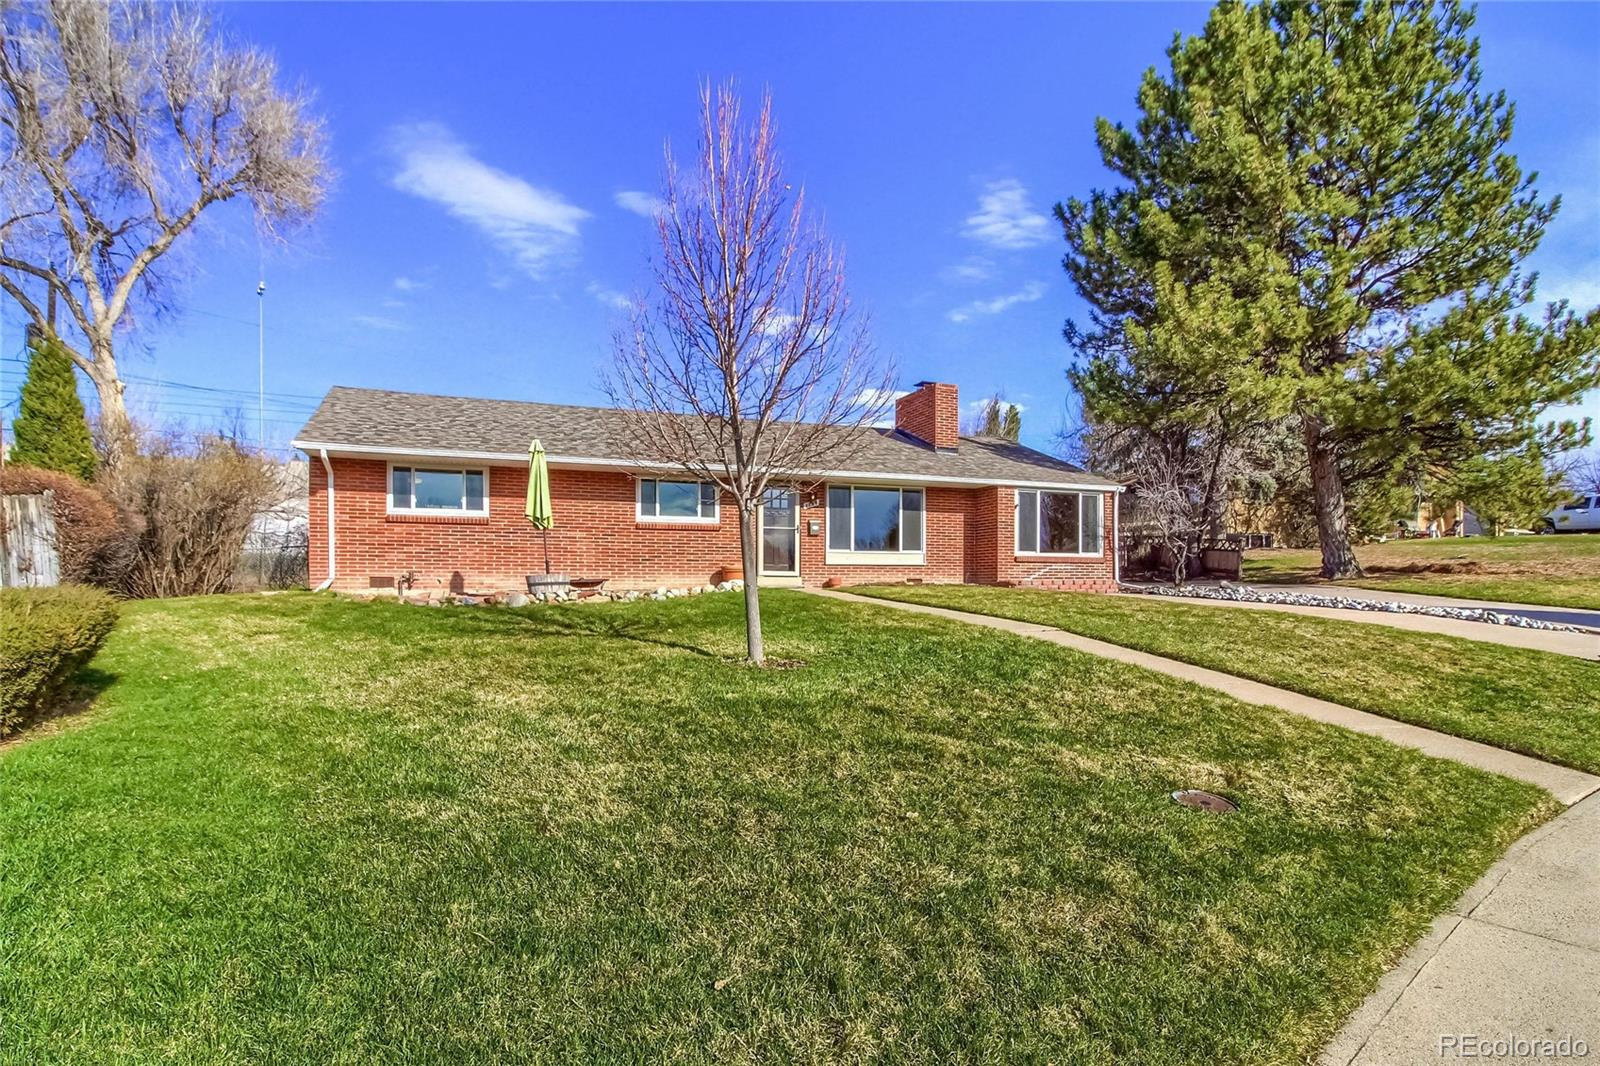 3168 S Holly Street Property Photo - Denver, CO real estate listing